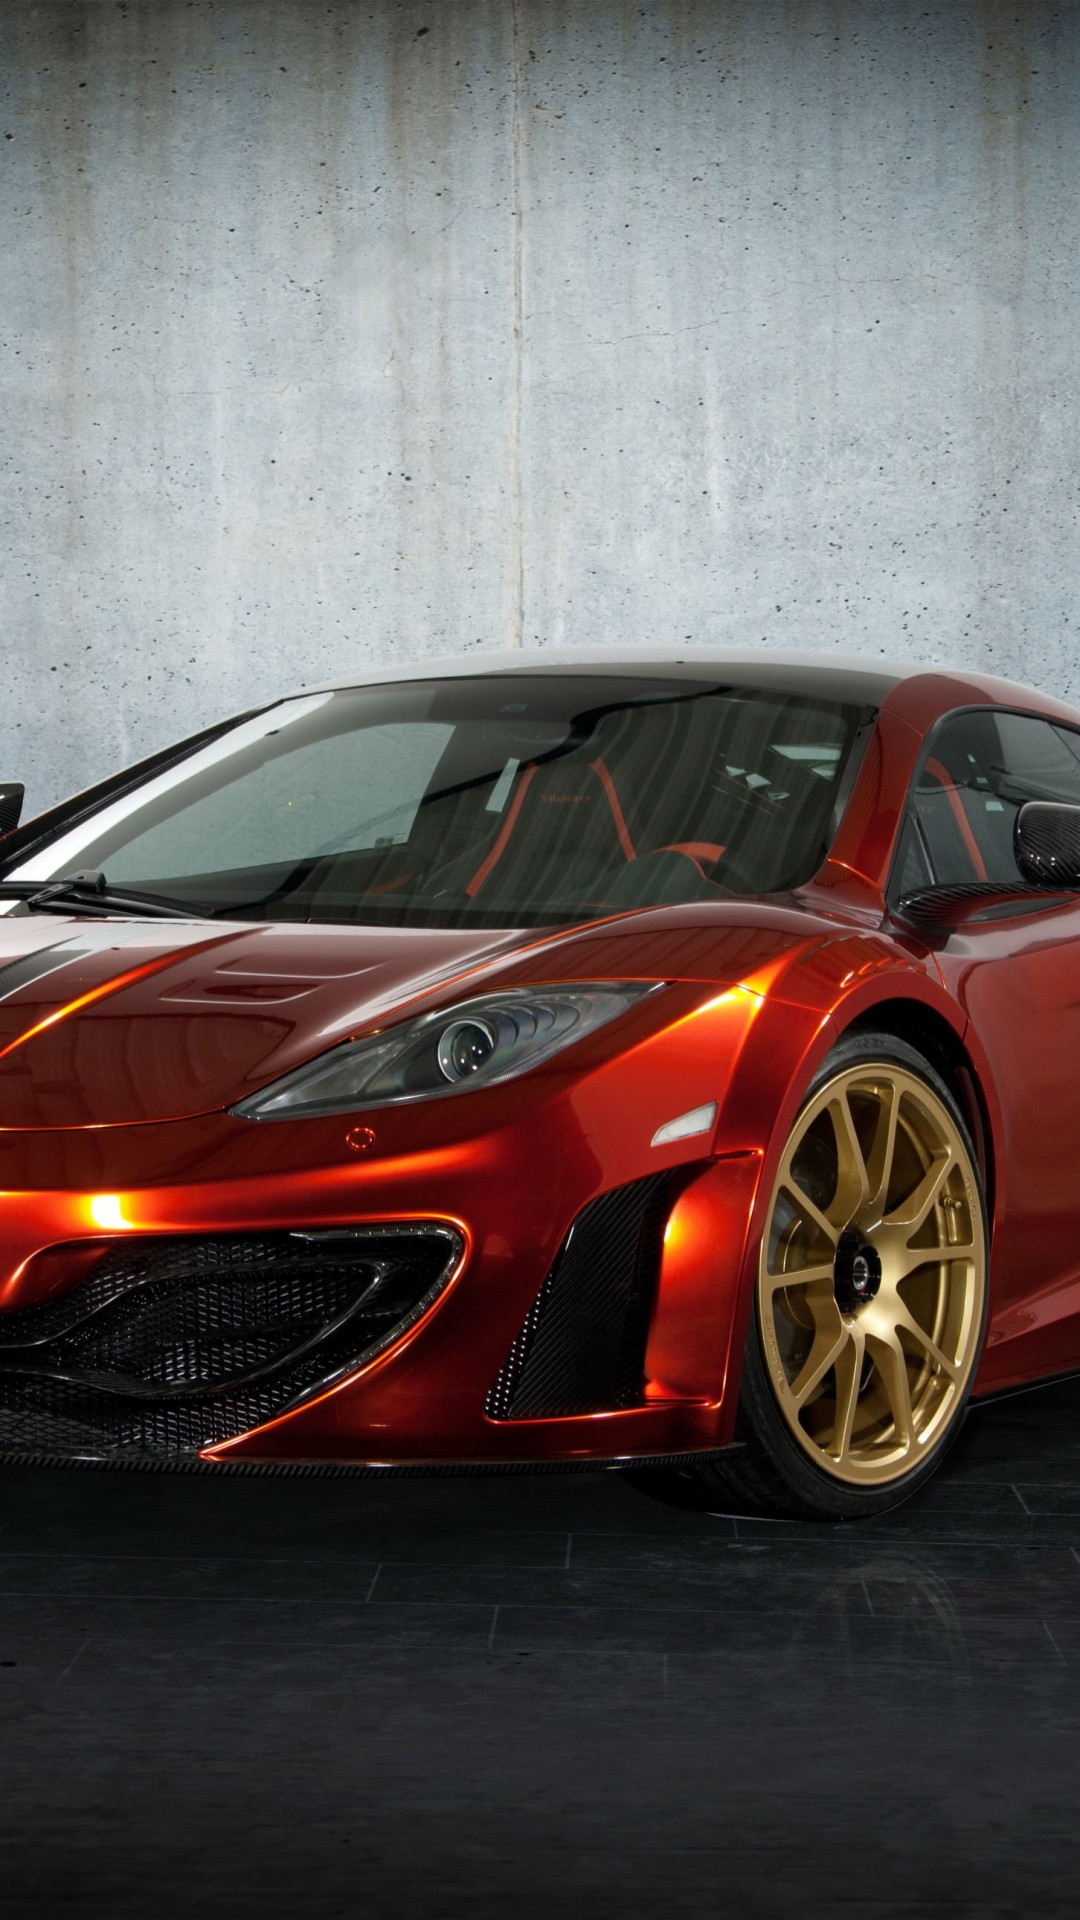 McLaren MP4-12Cf By Mansory Wallpaper for Motorola Moto X